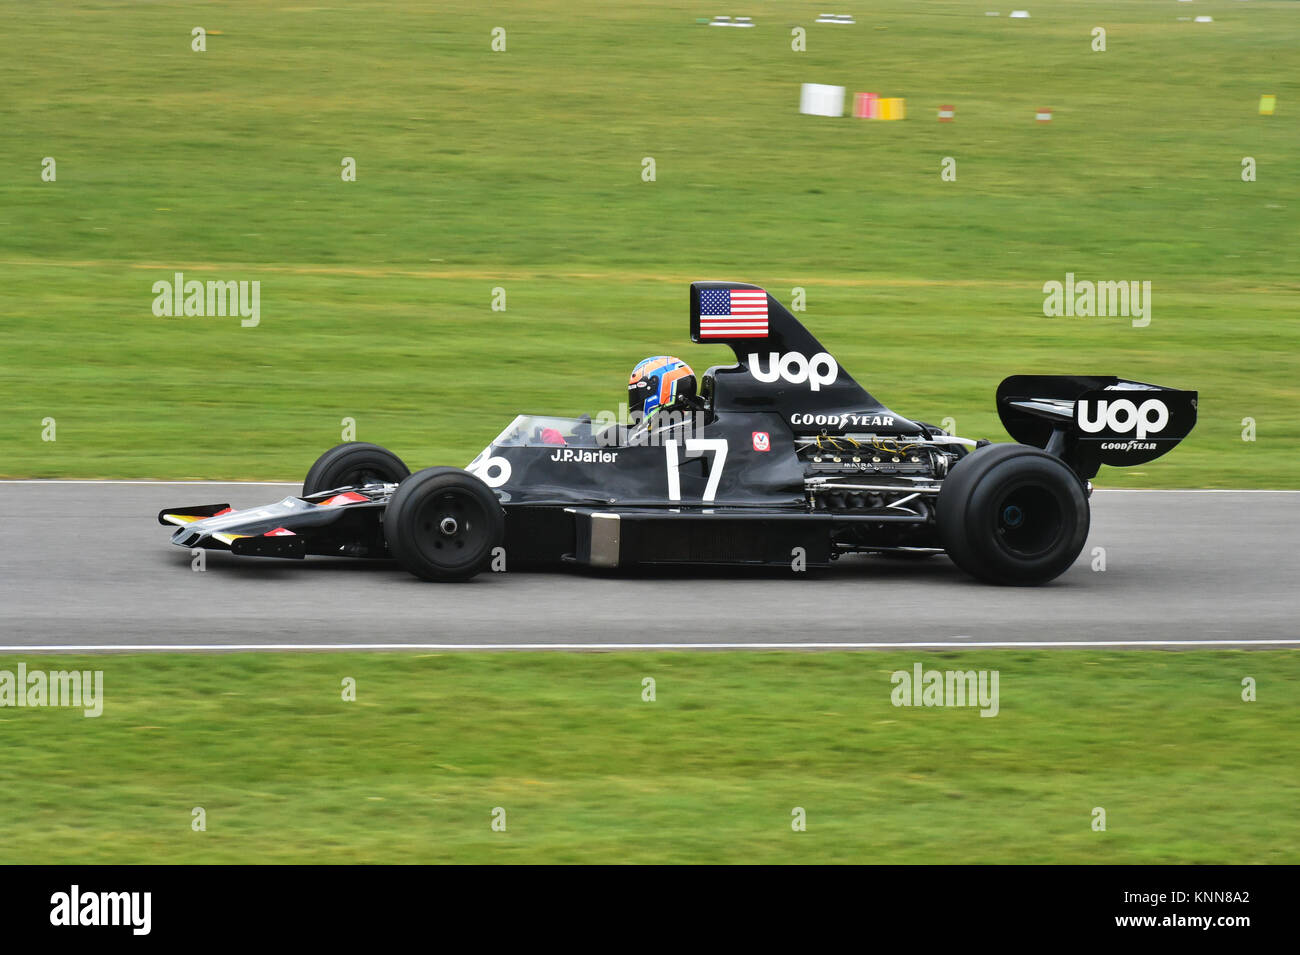 Shadow-Cosworth DN5, High air box F1 Cars, Goodwood 73rd MM March 2015, 73rd, 73rd Members Meeting, Action, Chris - Stock Image